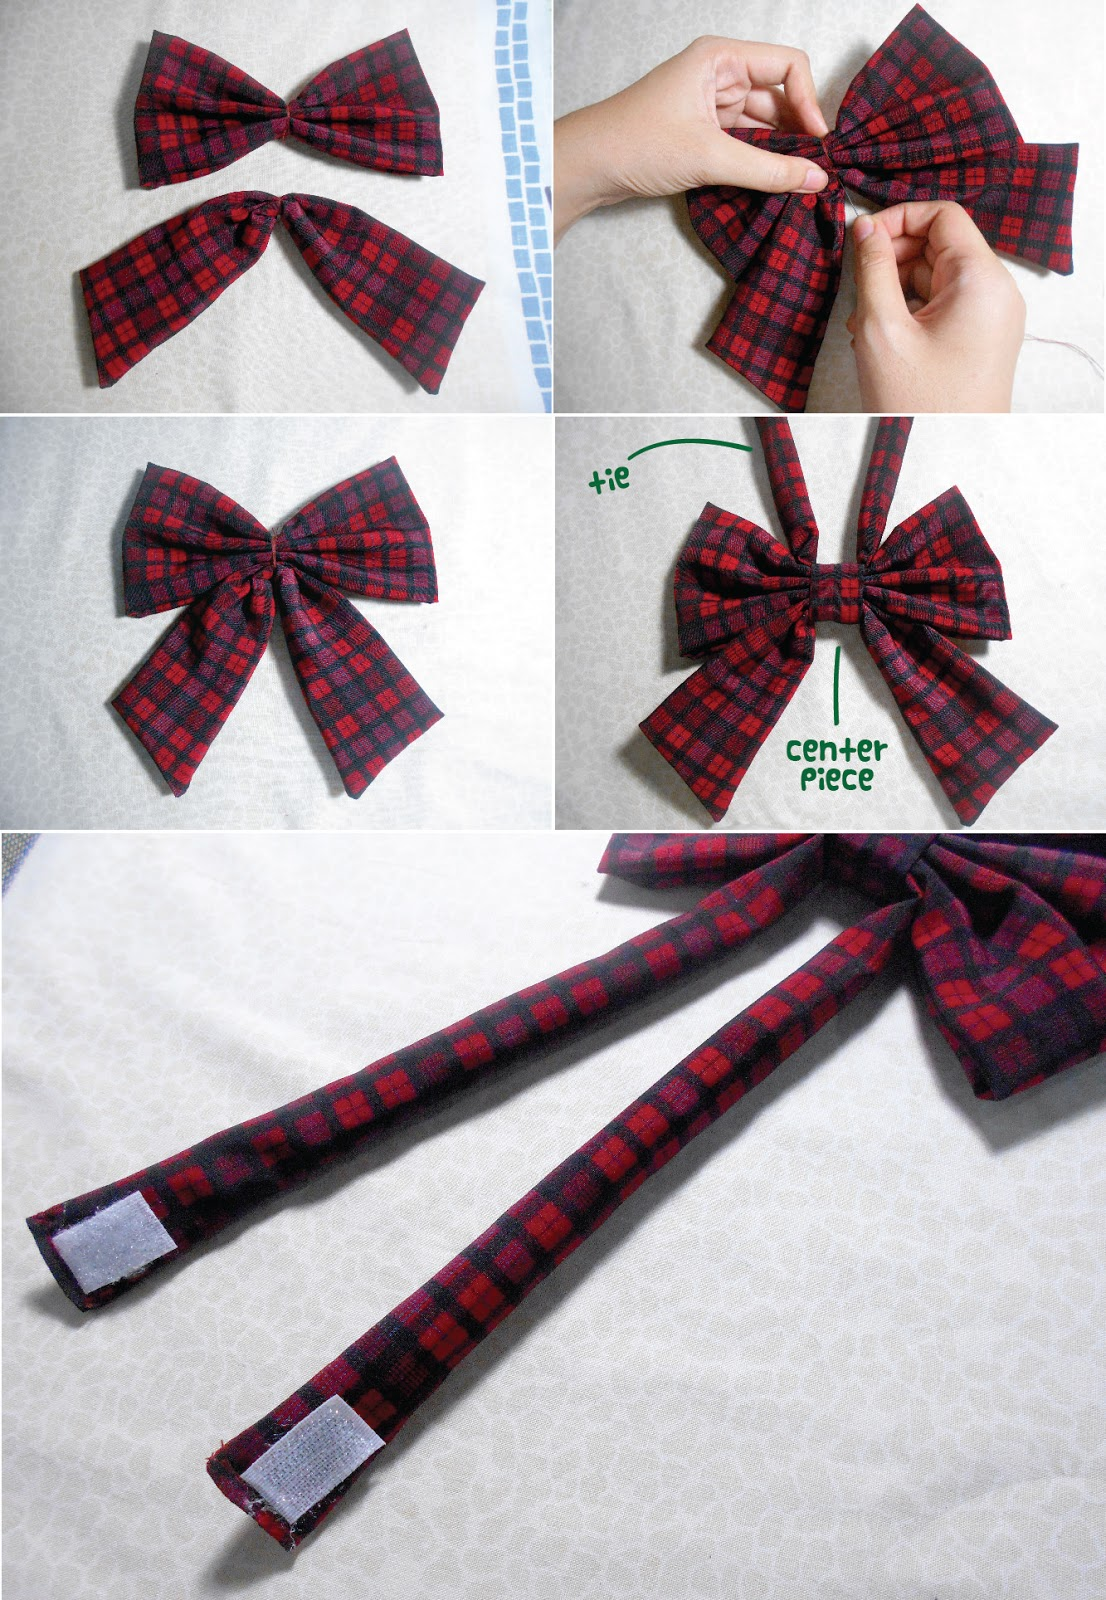 Anime diy japanese school girl bow tie anime school girl bow tie diy putting it altogether ccuart Gallery